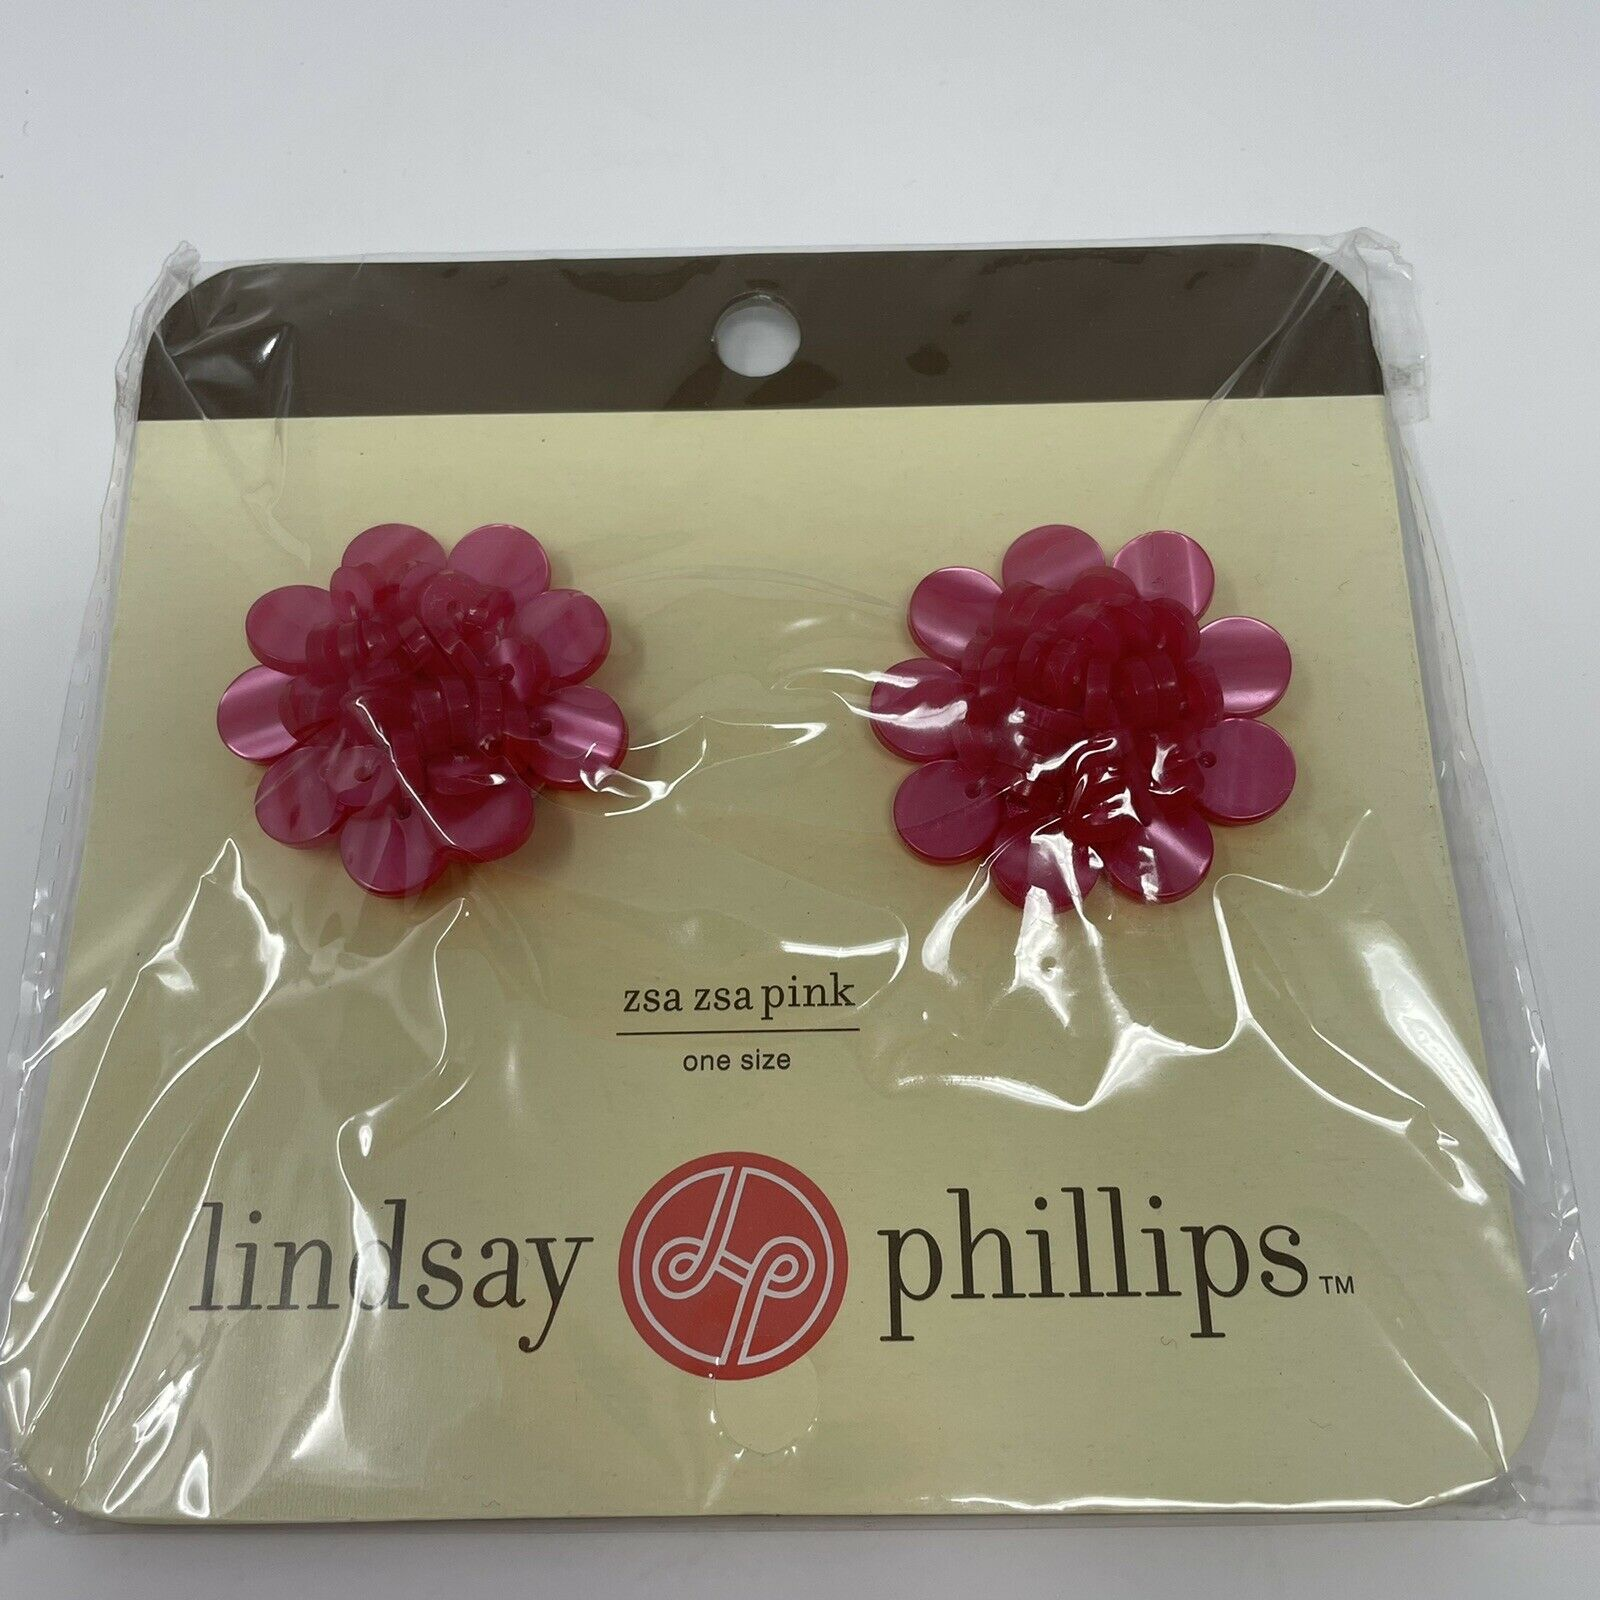 New LINDSAY PHILLIPS Shoe SNAPS Charms ZSA ZSA Pink Pearlized Button FLOWERS